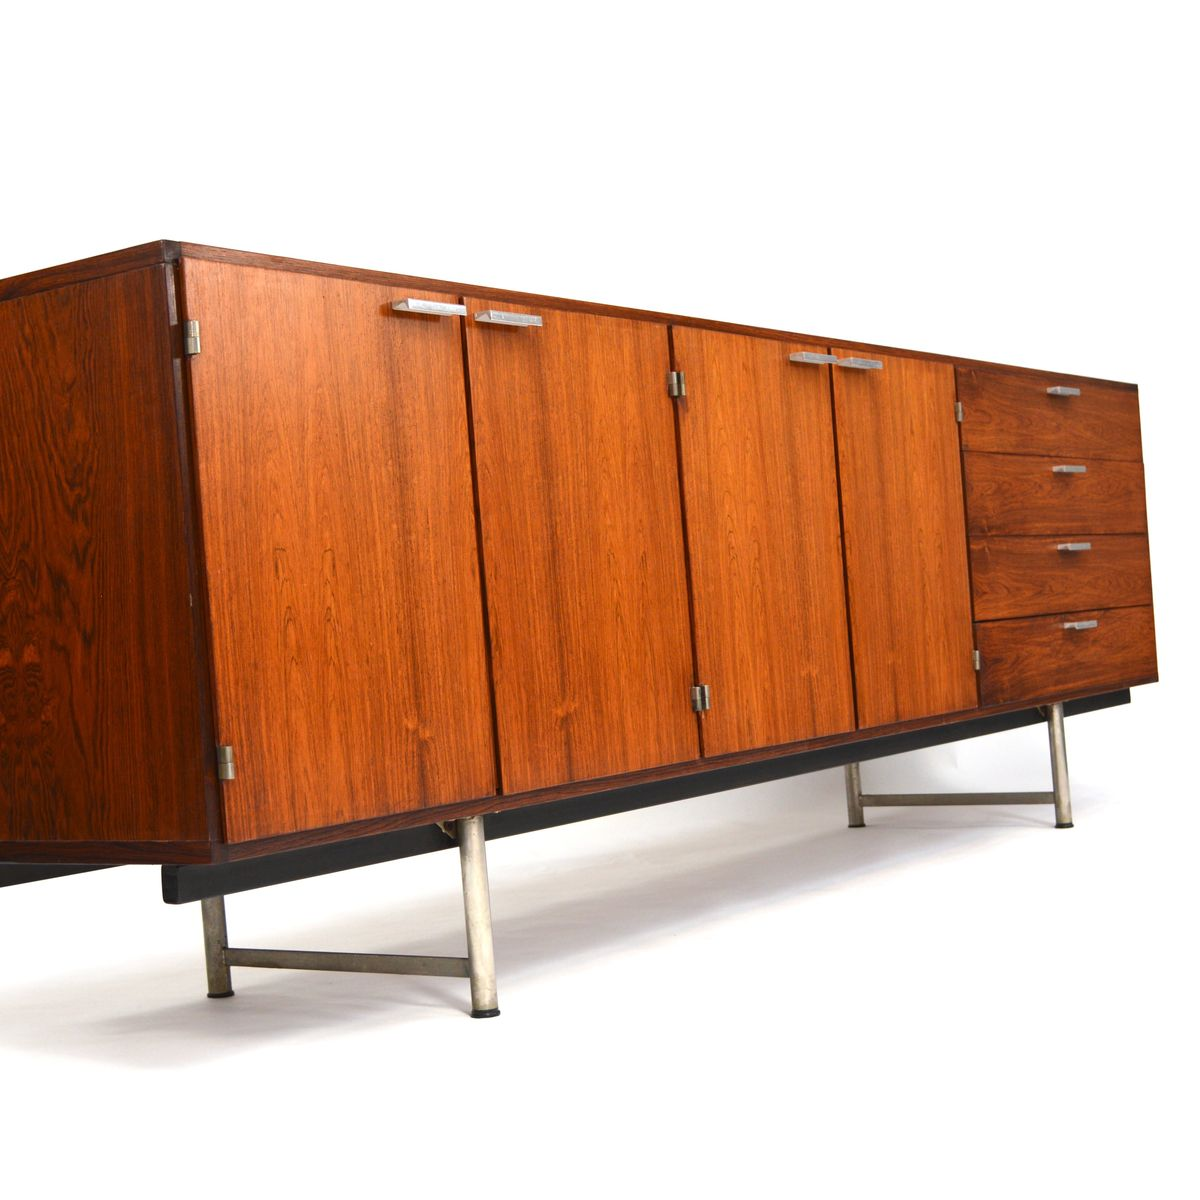 Dutch mid century rosewood sideboard by cees braakman for - Sideboard mid century ...